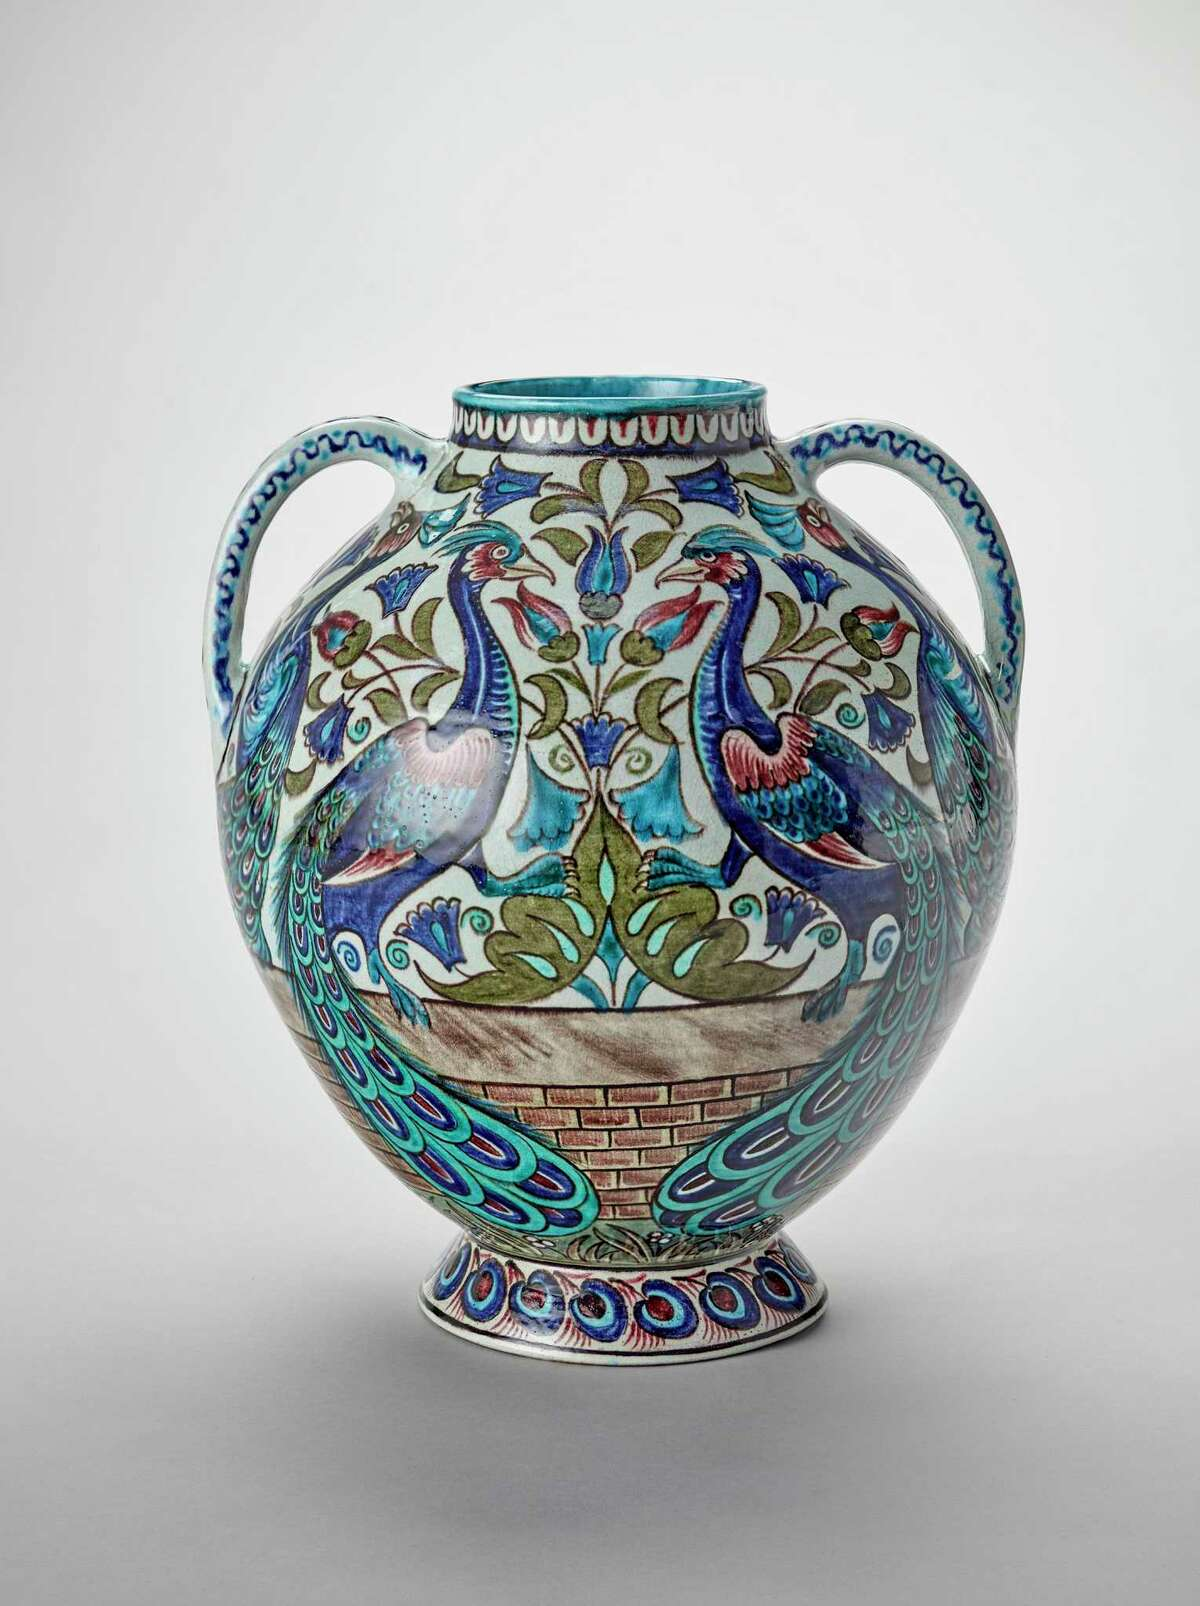 """An earthenware peacock vase, circa 1885, is part of the San Antonio Museum of Art as part of the exhibit """"Victorian Radicals: From the Pre-Raphaelites to the Arts and Crafts Movement."""""""